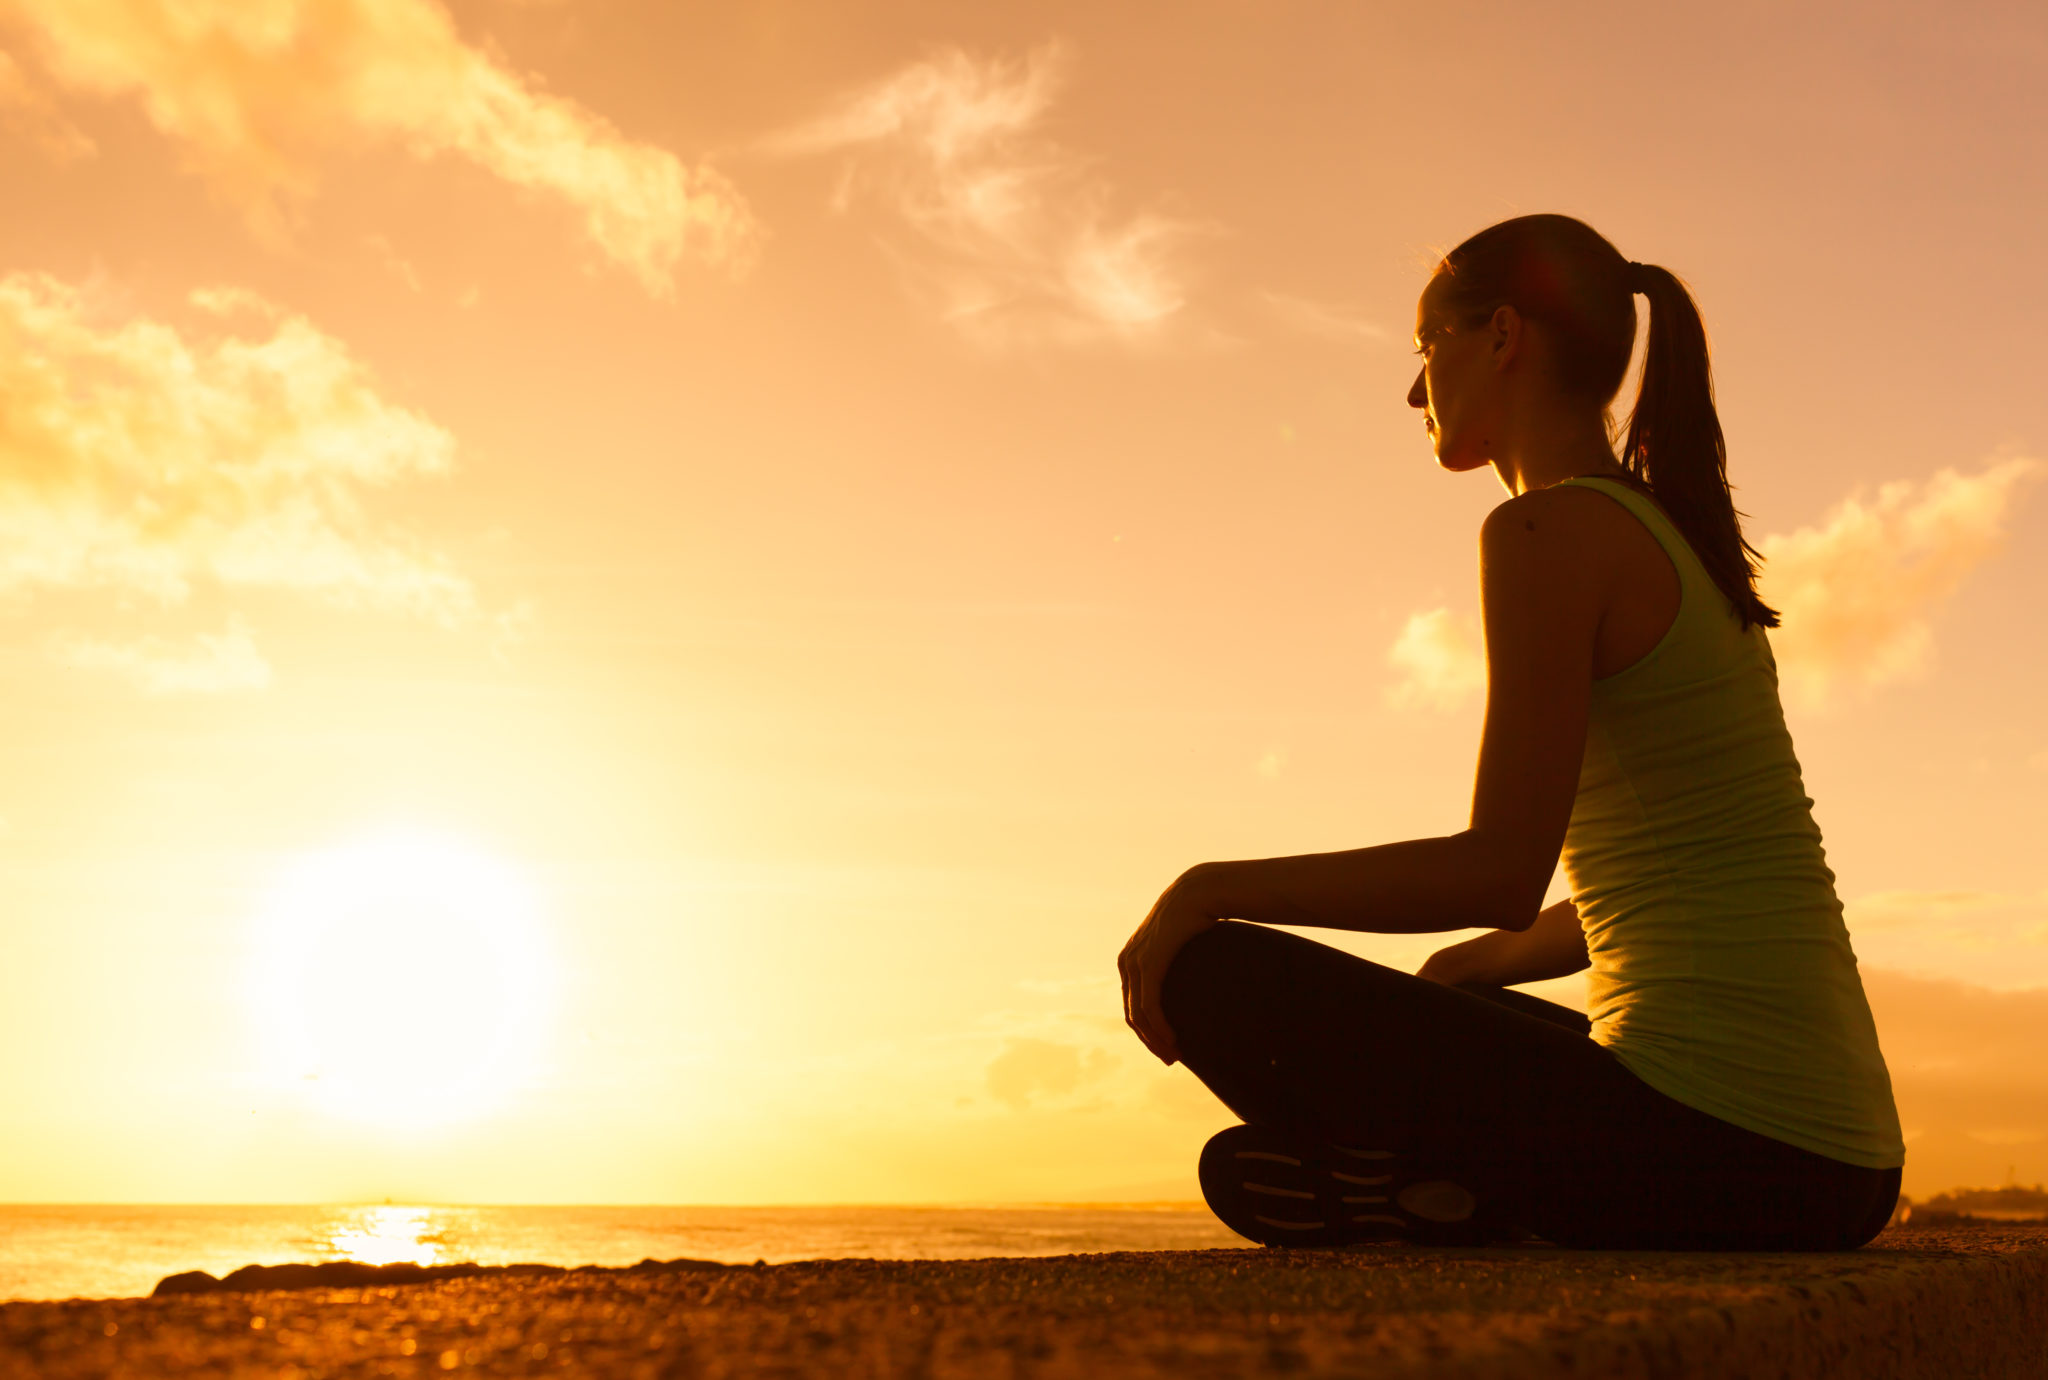 3 Steps to Combat Anxiety and Build Your Resilience to Stress